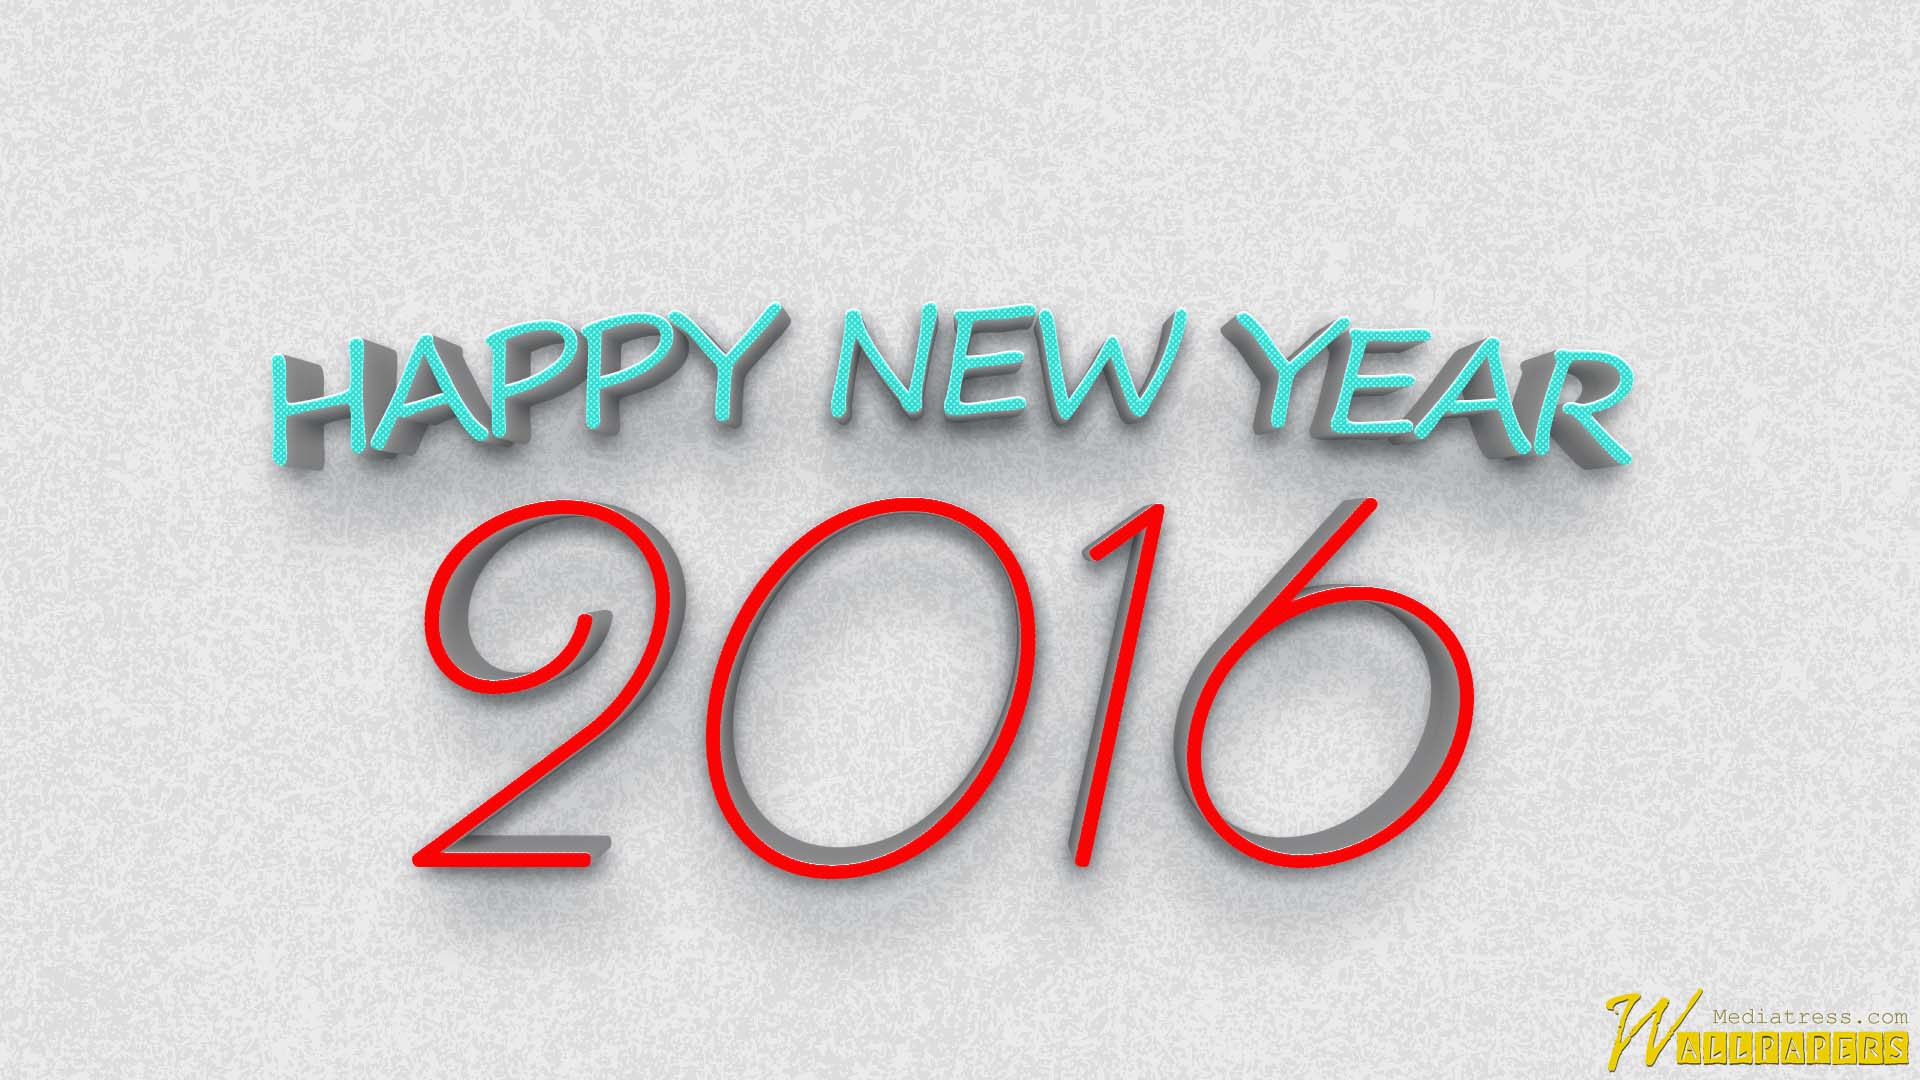 Happy New Year 2016 Wallpapers Windows 7